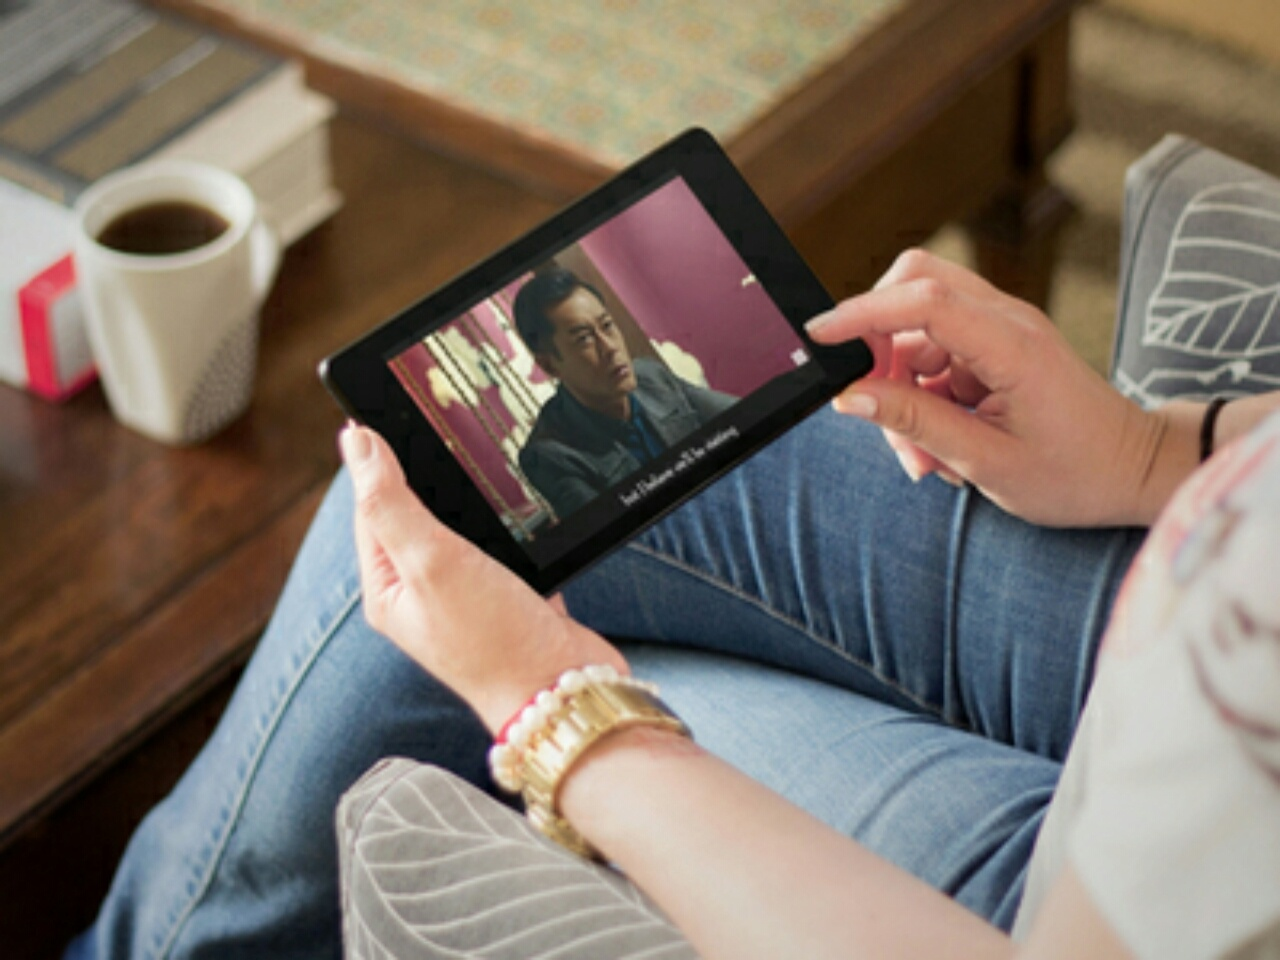 How to add subtitle in a movie via MX Player